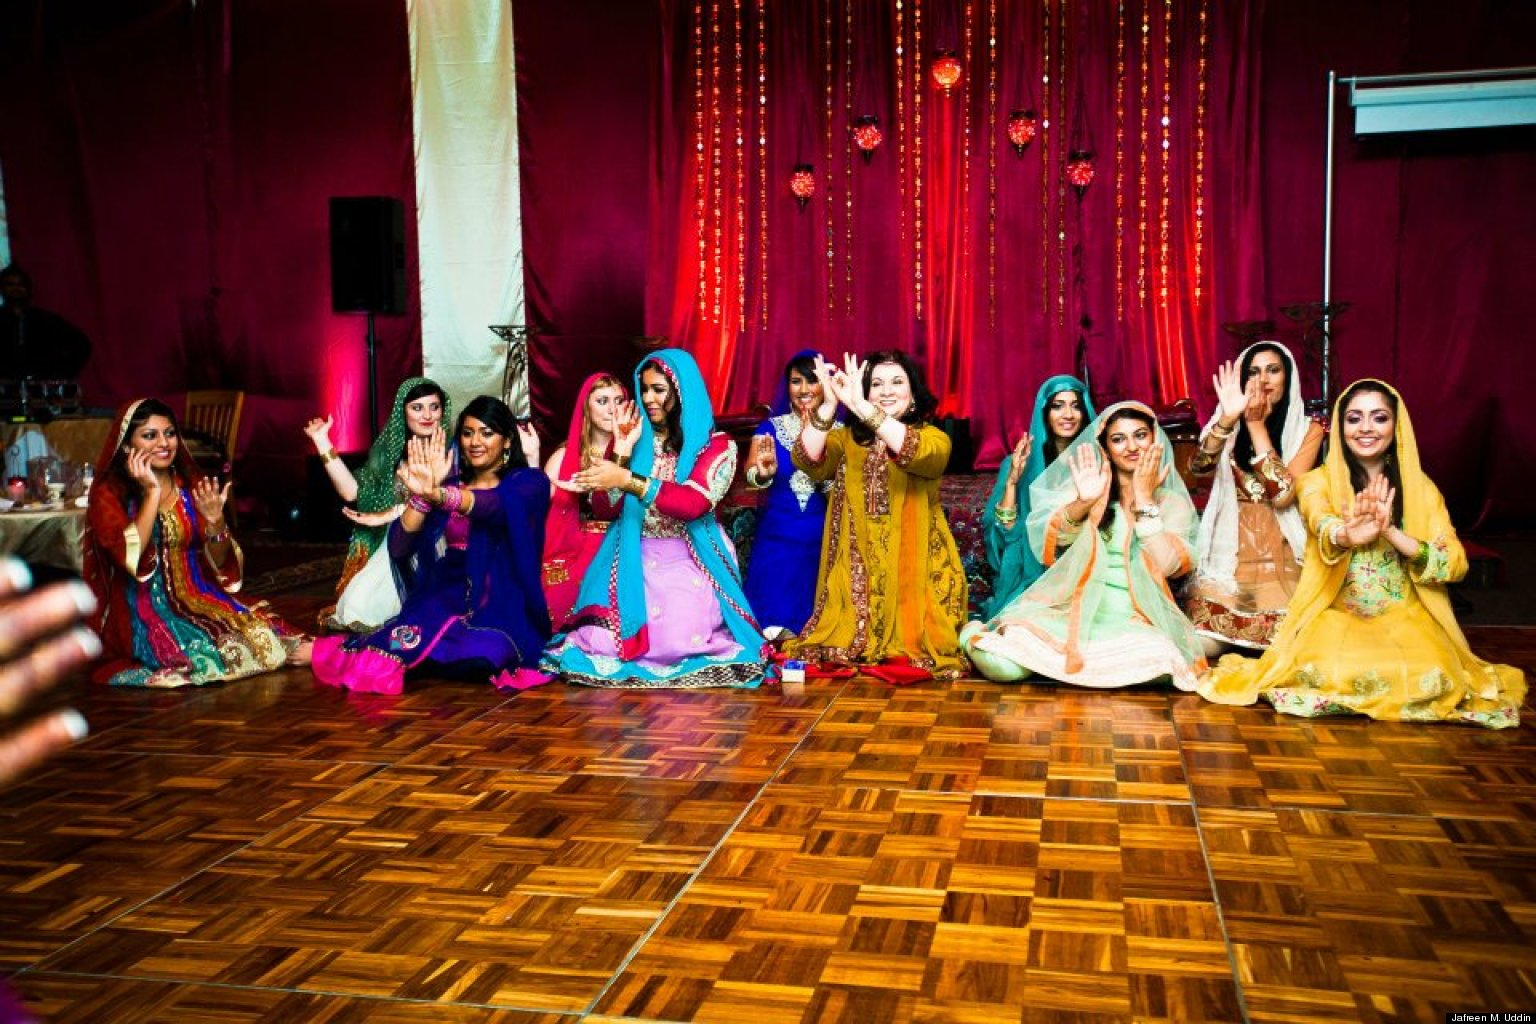 Mehndi ceremonies the world 39 s first bridal shower huffpost for Muslim wedding home decorations